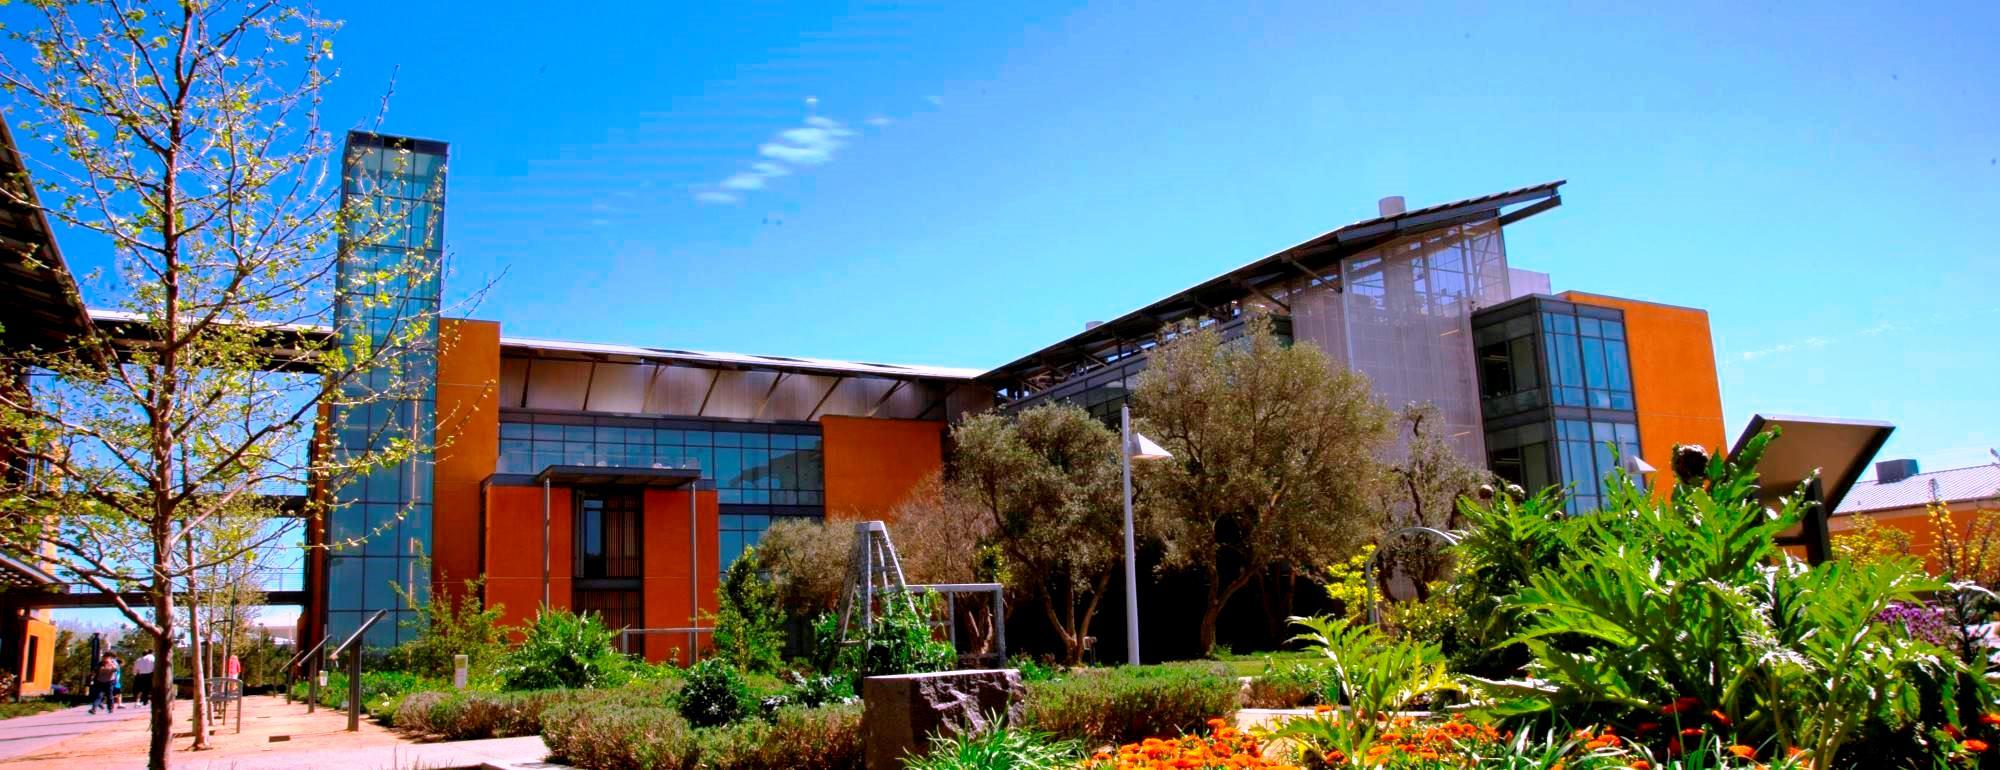 Robert Mondavi Institute   South. Welcome To Food Science And Technology